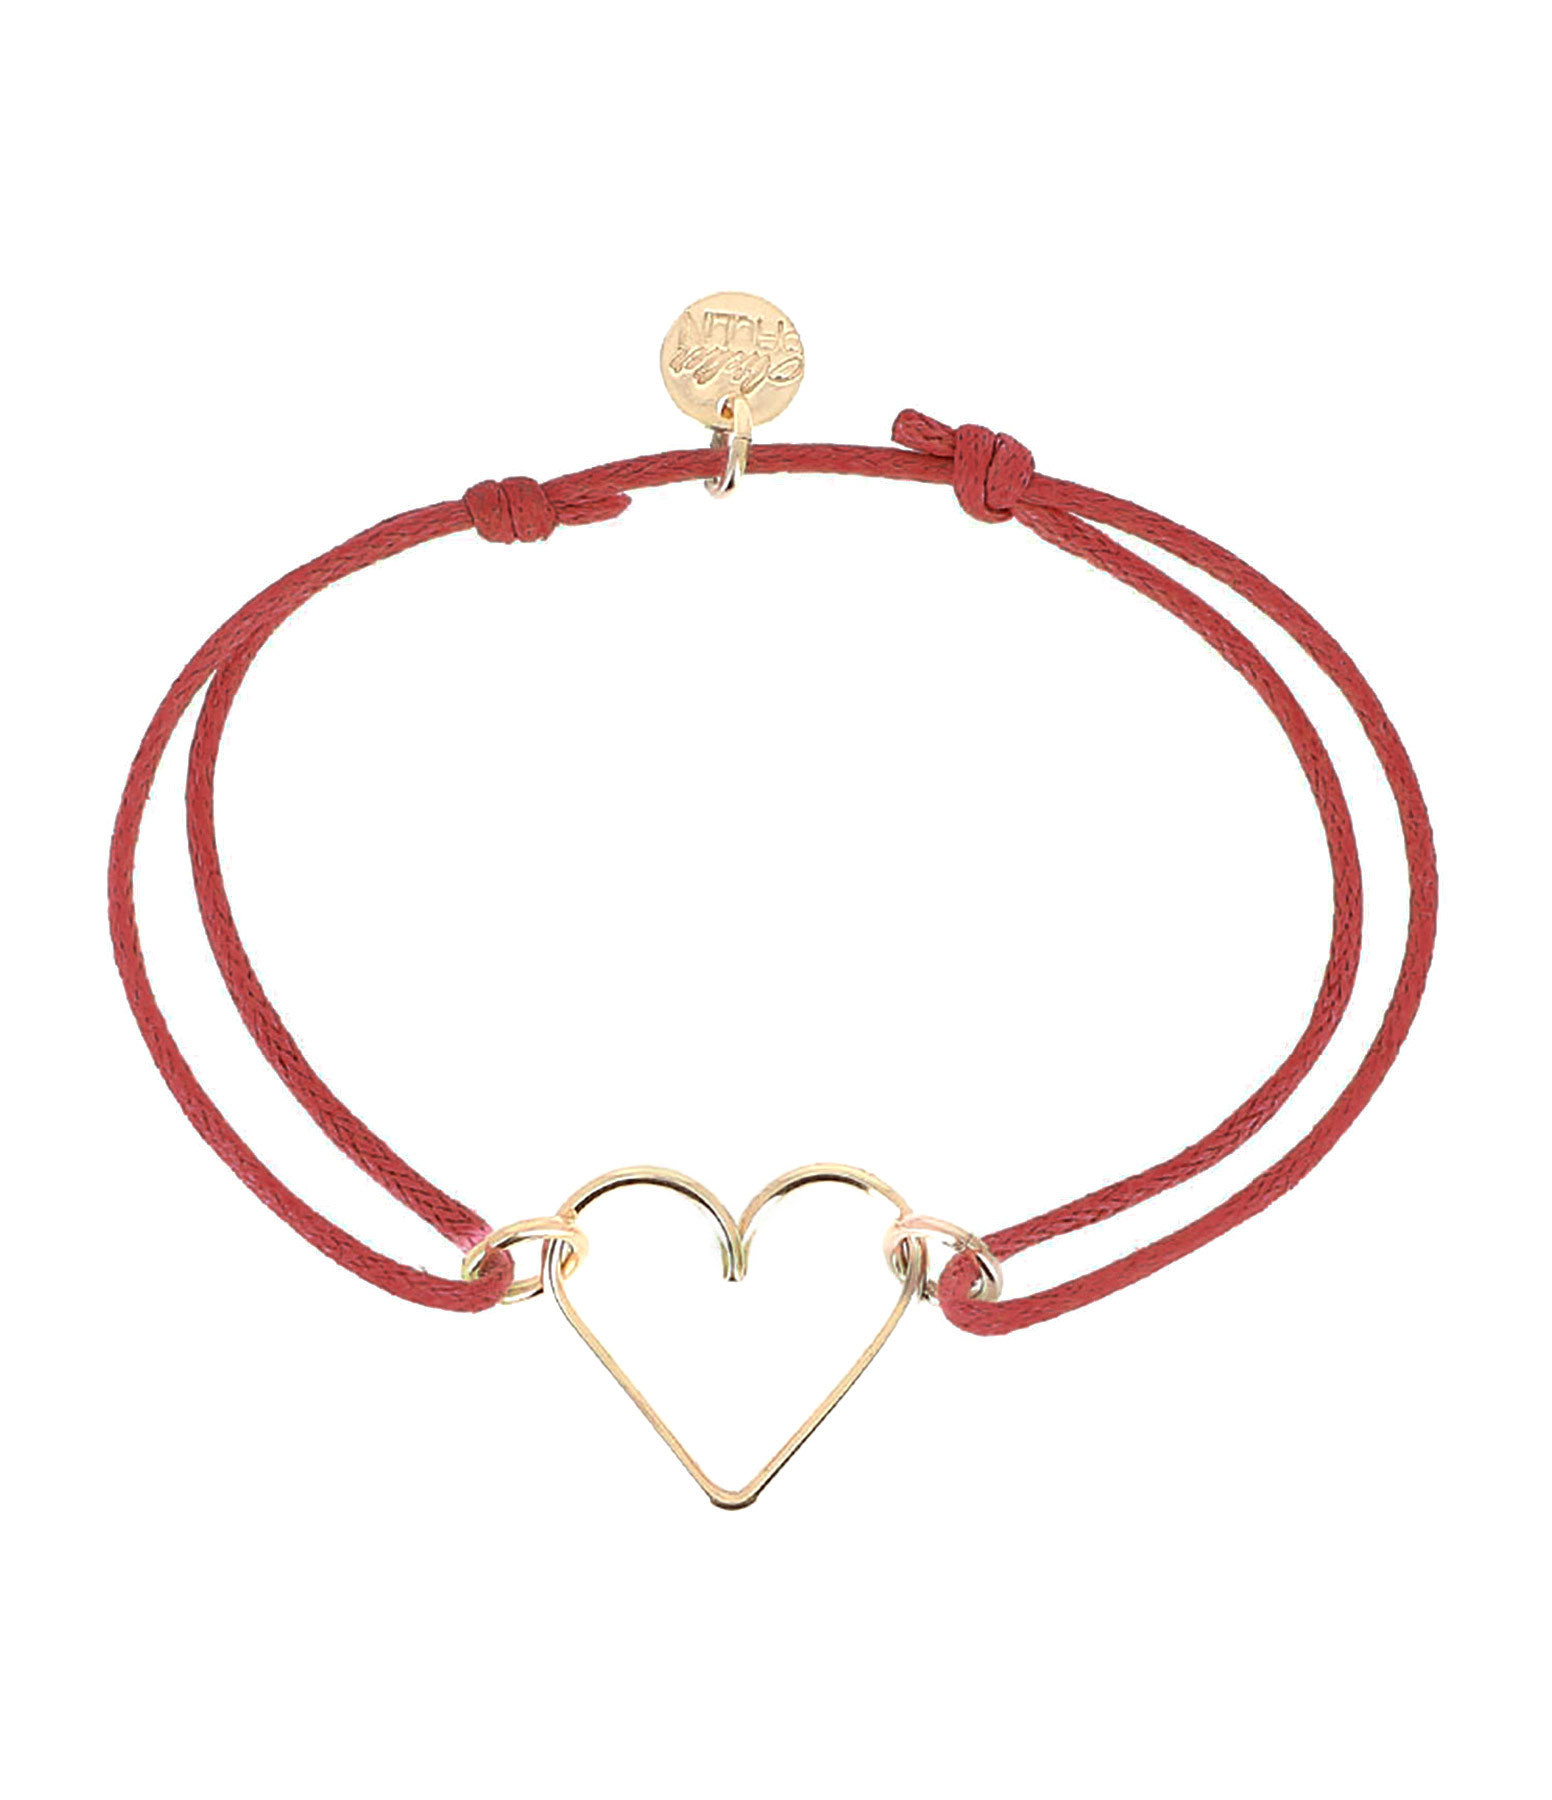 ATELIER PAULIN - Bracelet Cordon Ciré Rouge Cœur Gold Filled 14K, Exclusivité Lulli